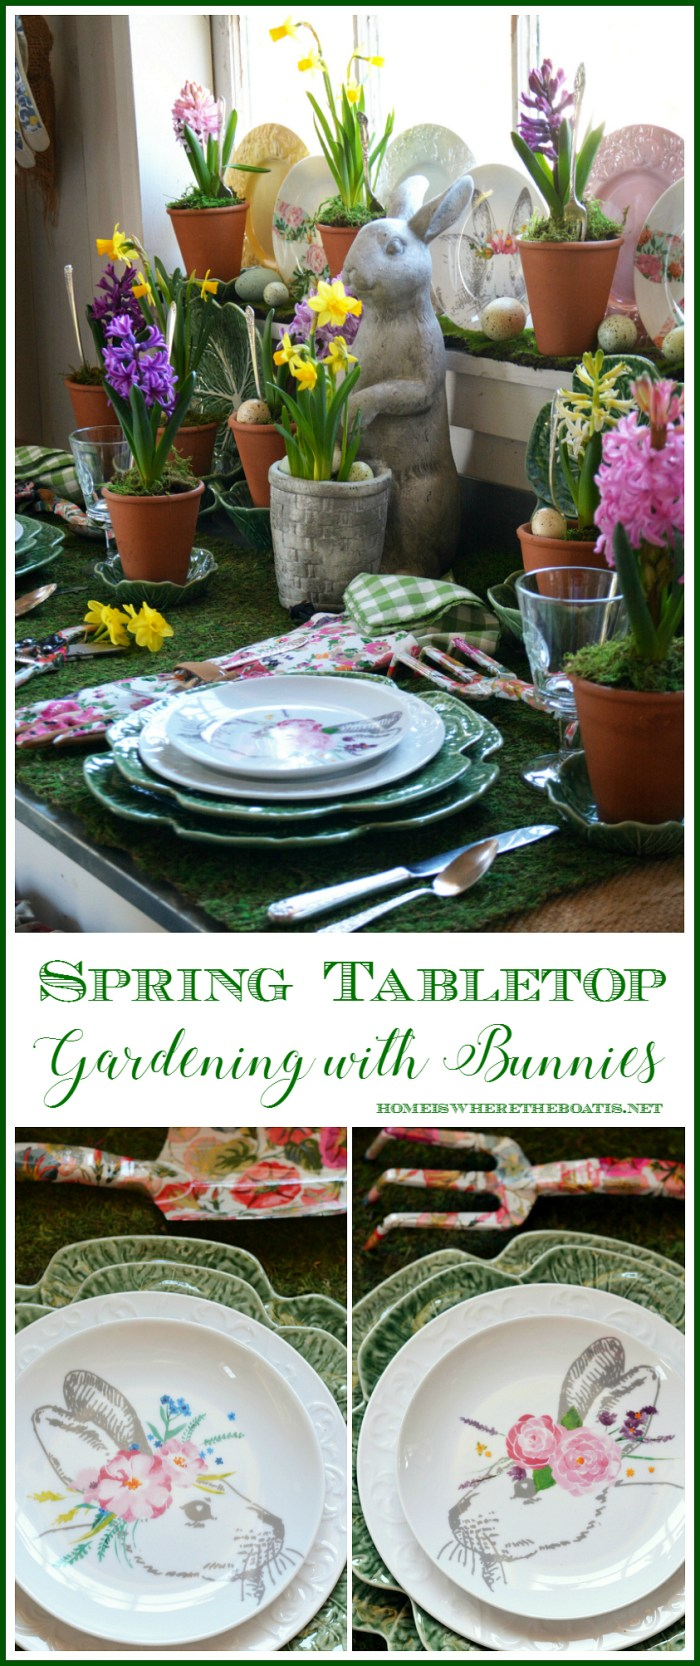 Spring Tabletop Gardening with Bunnies in the Potting Shed with a moss table runner, gardening gloves, blooming garden tools and spring bulbs | ©homeiswheretheboatis.net #tablescapes #spring #garden #bunnies